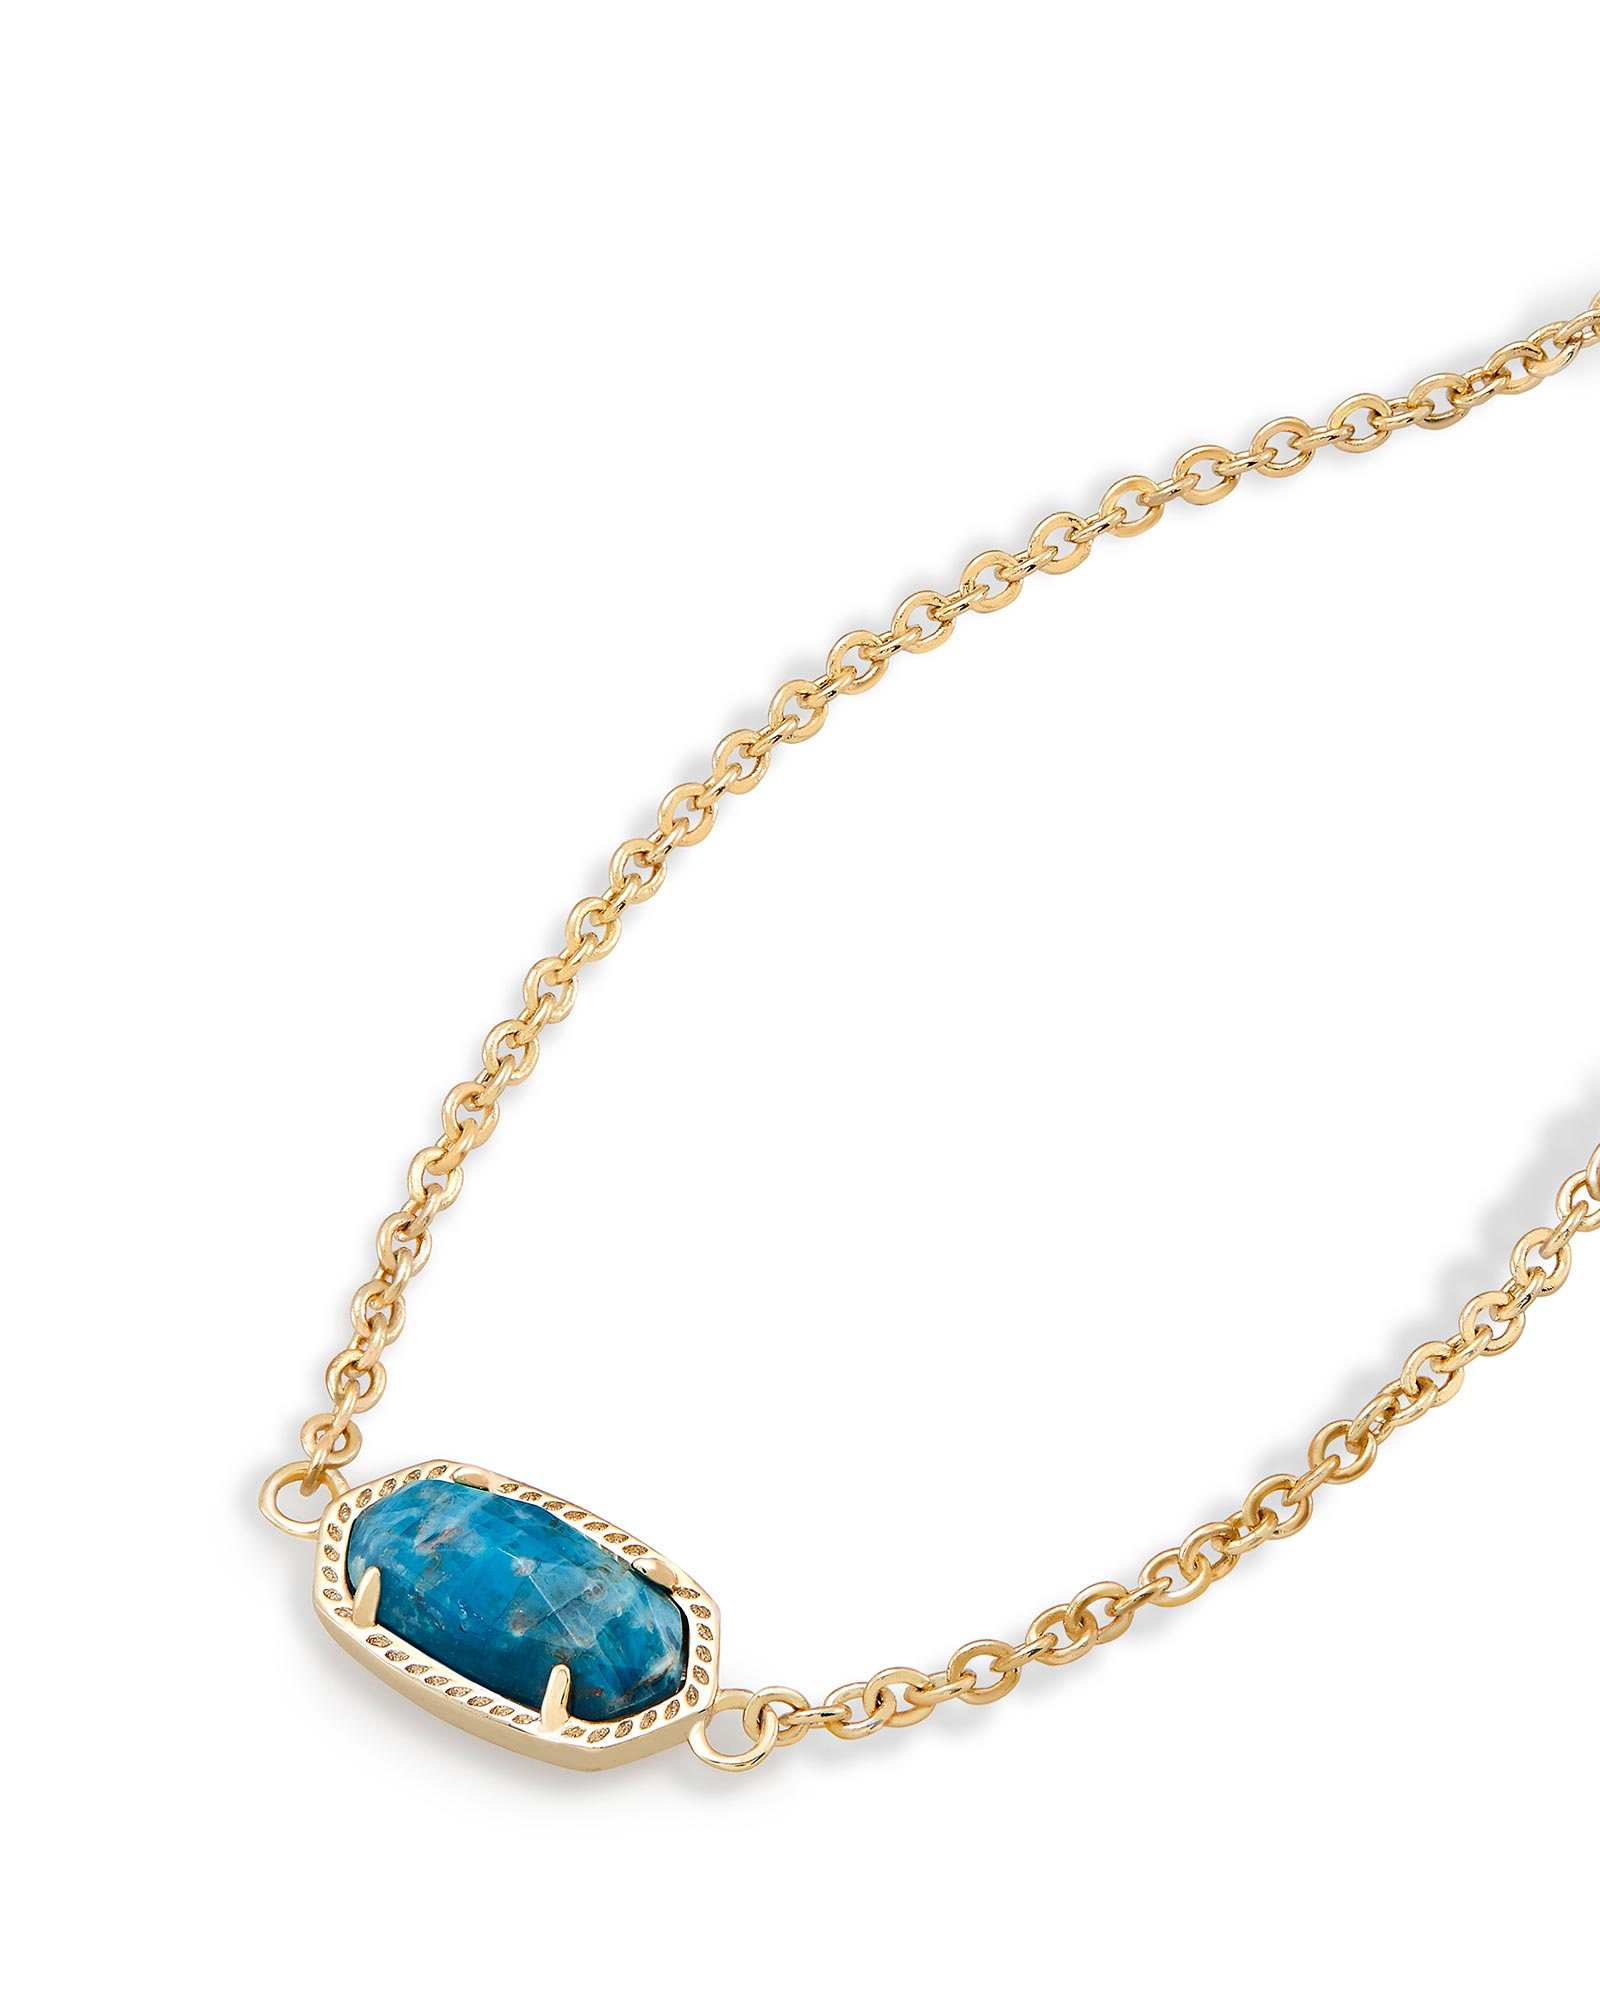 Elaina Adjustable Chain Bracelet in Aqua Apatite